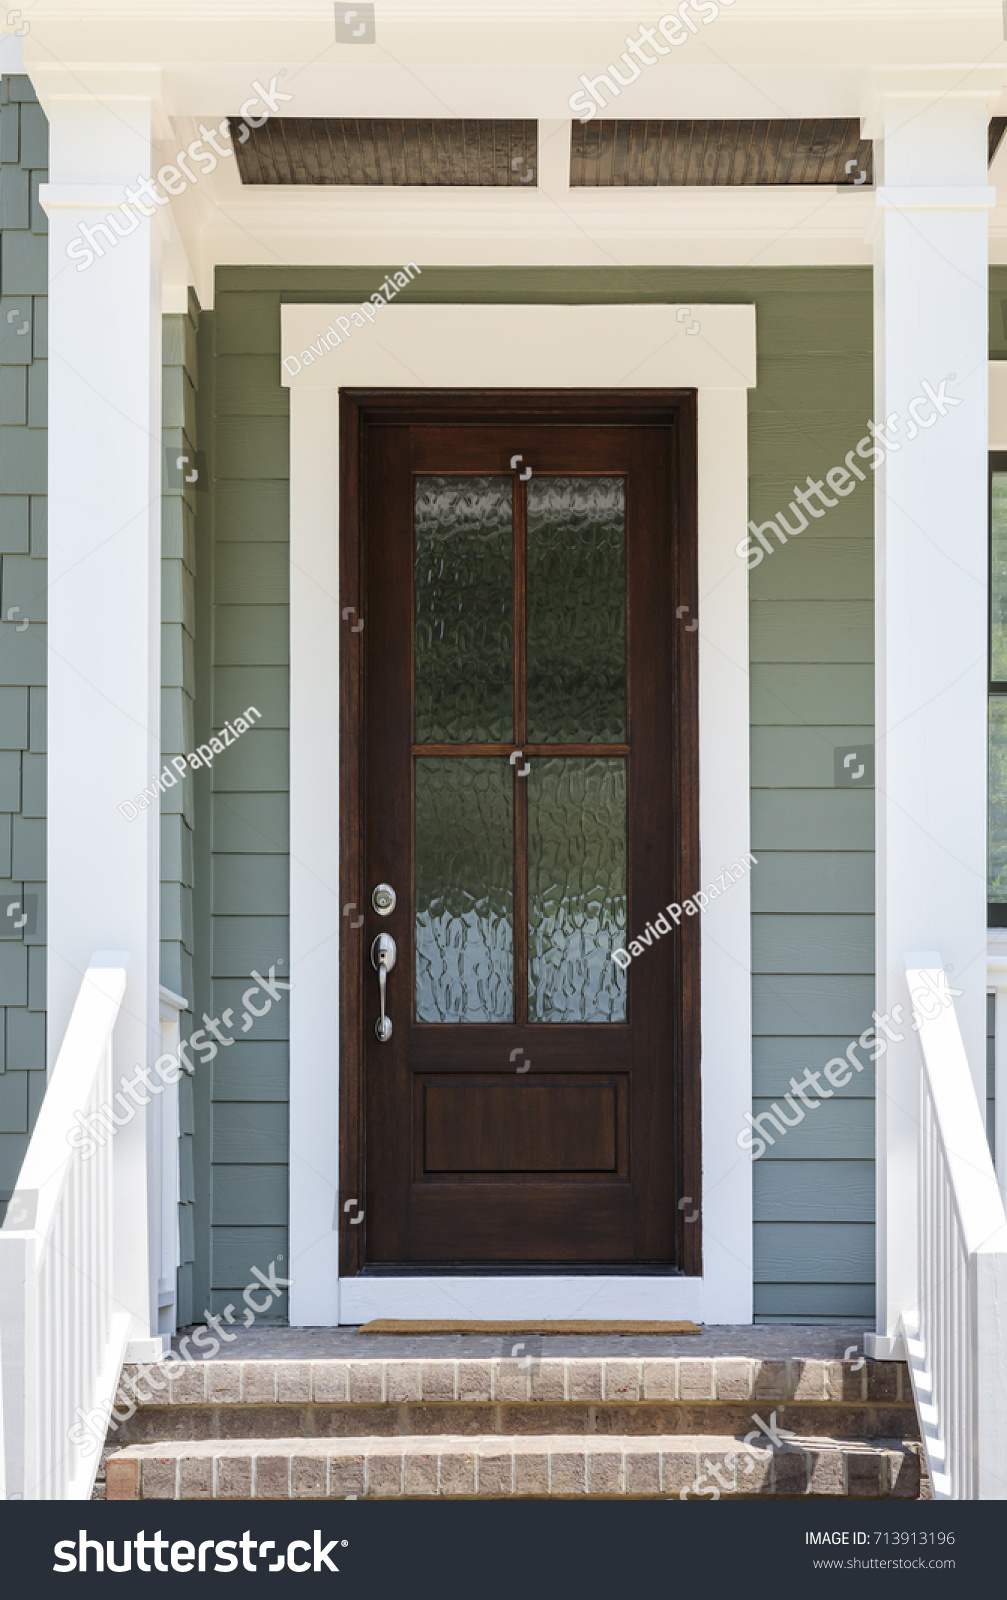 Front Door Frosted Glass Stock Photo Edit Now 713913196 Shutterstock